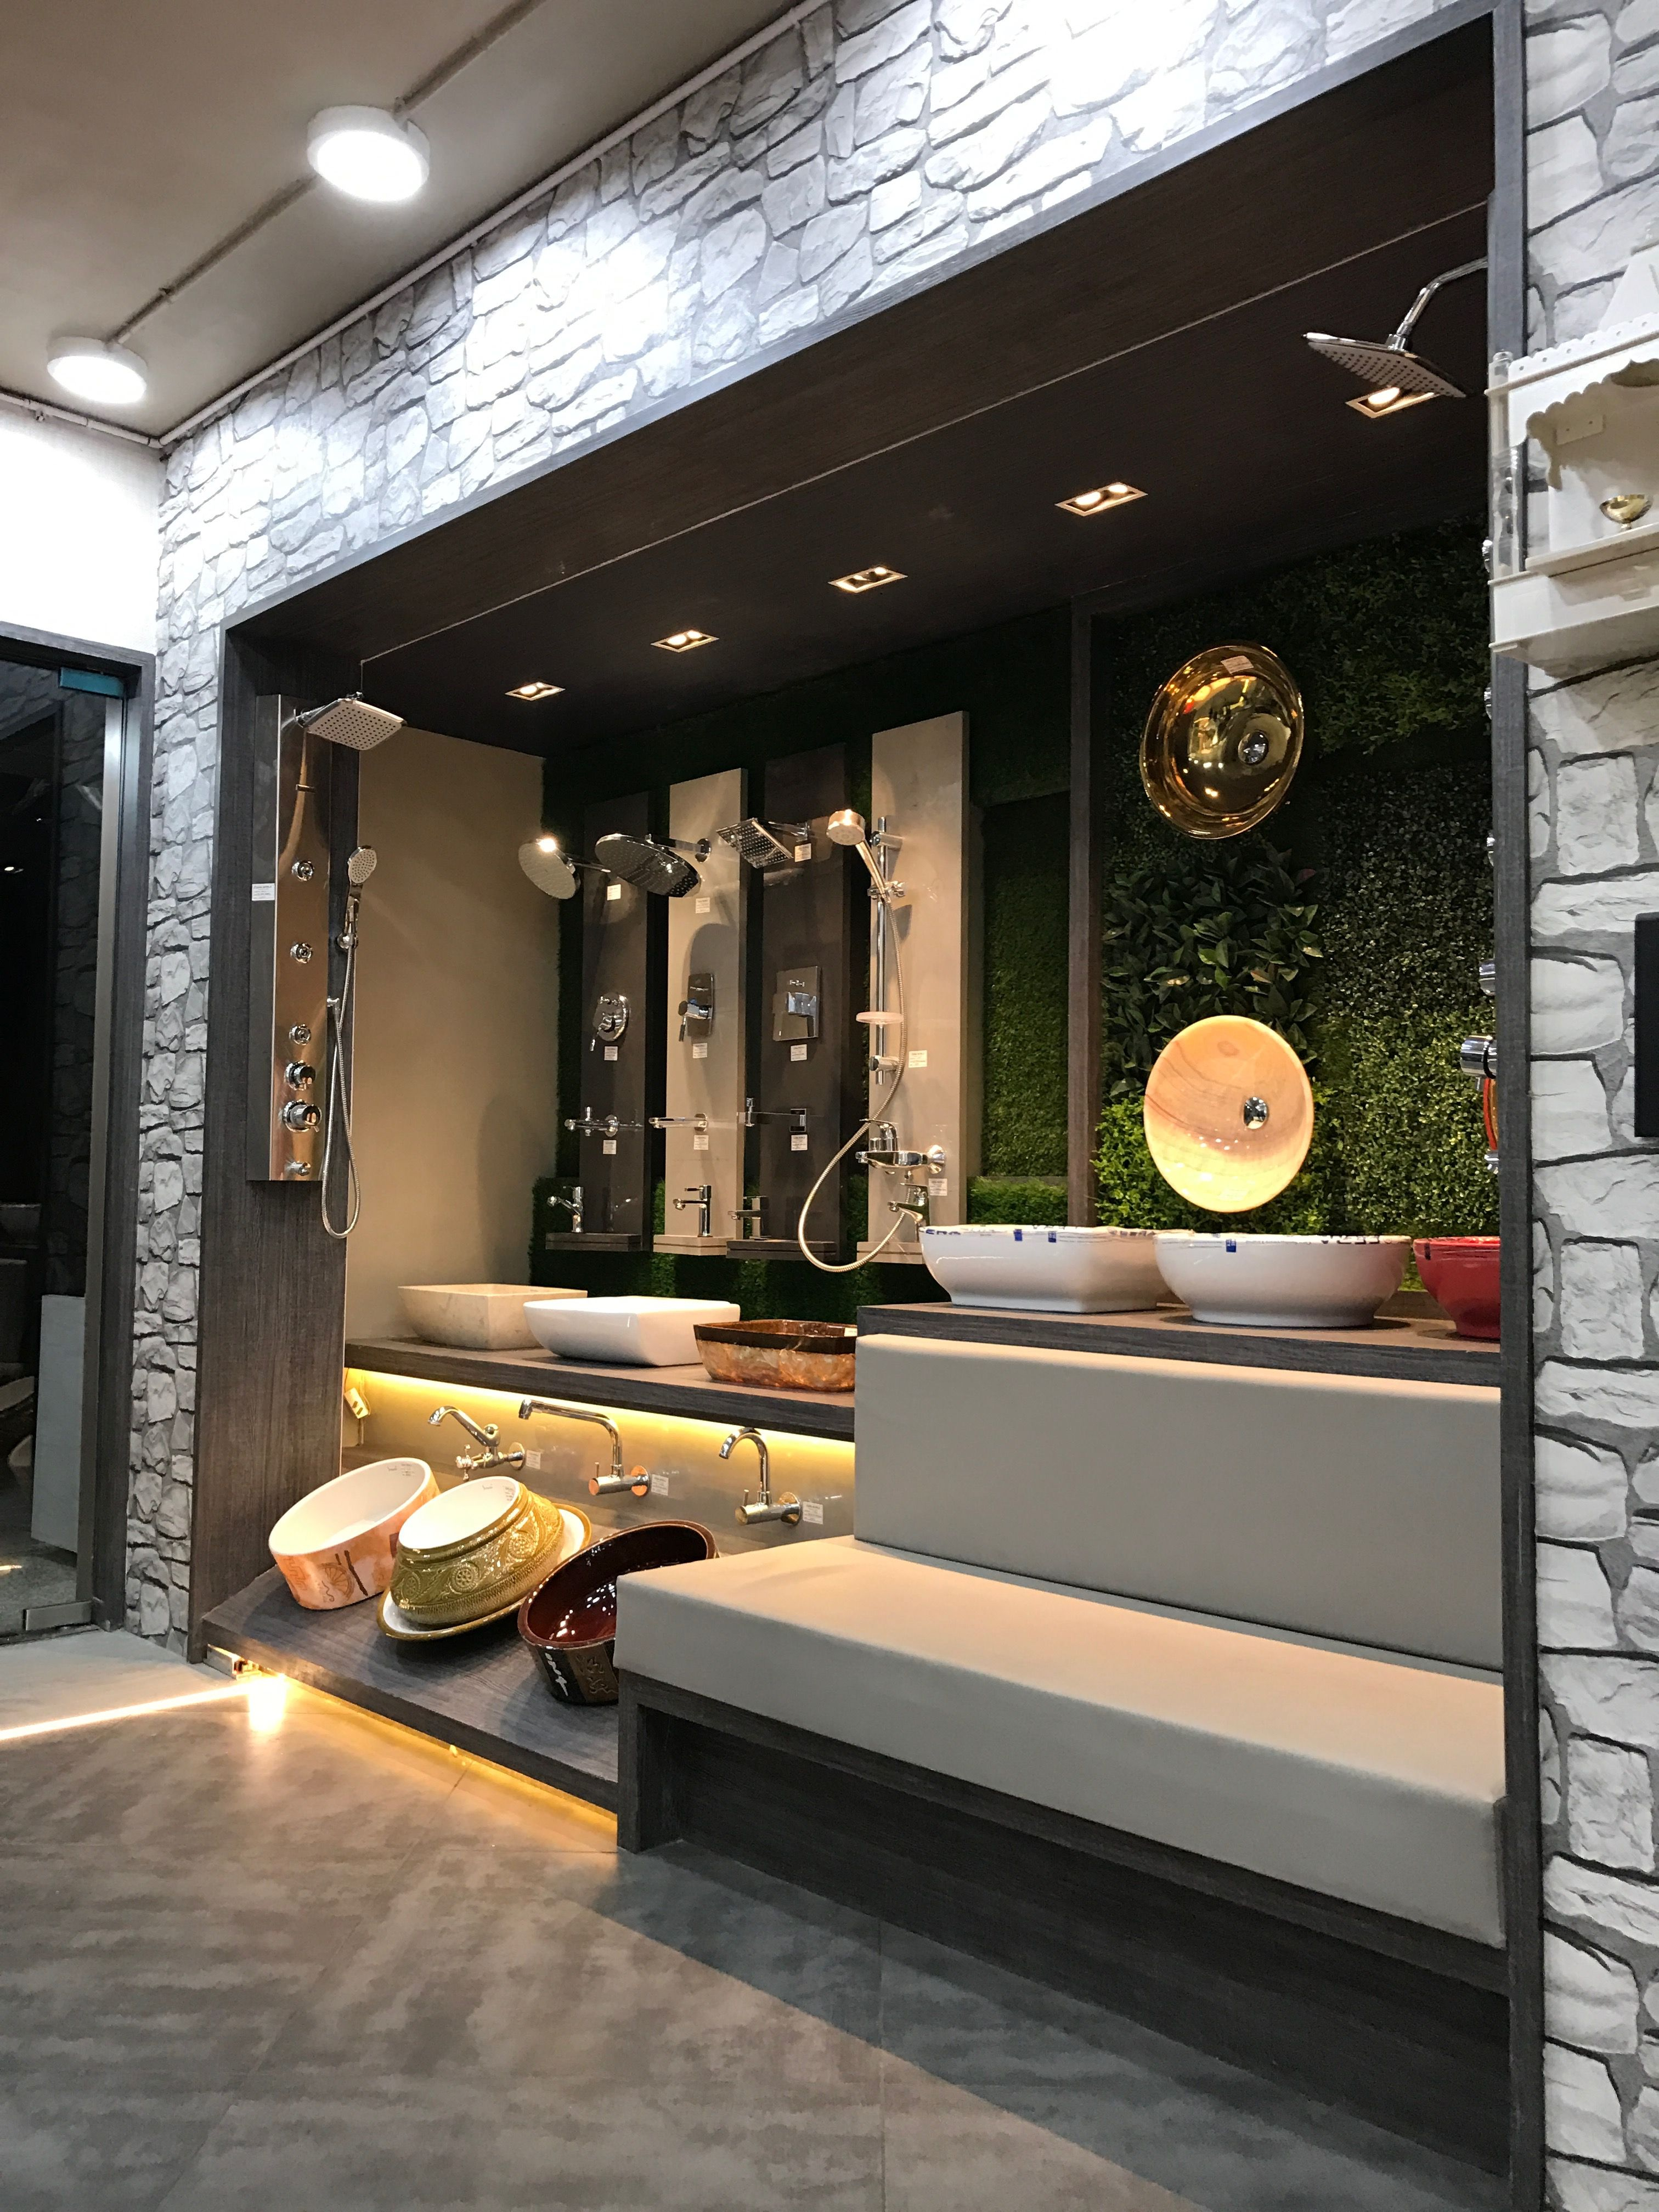 Great Sanitaryware Showrooms Extravagant Modern Sanitaryware Showrooms Bathroom Best Design